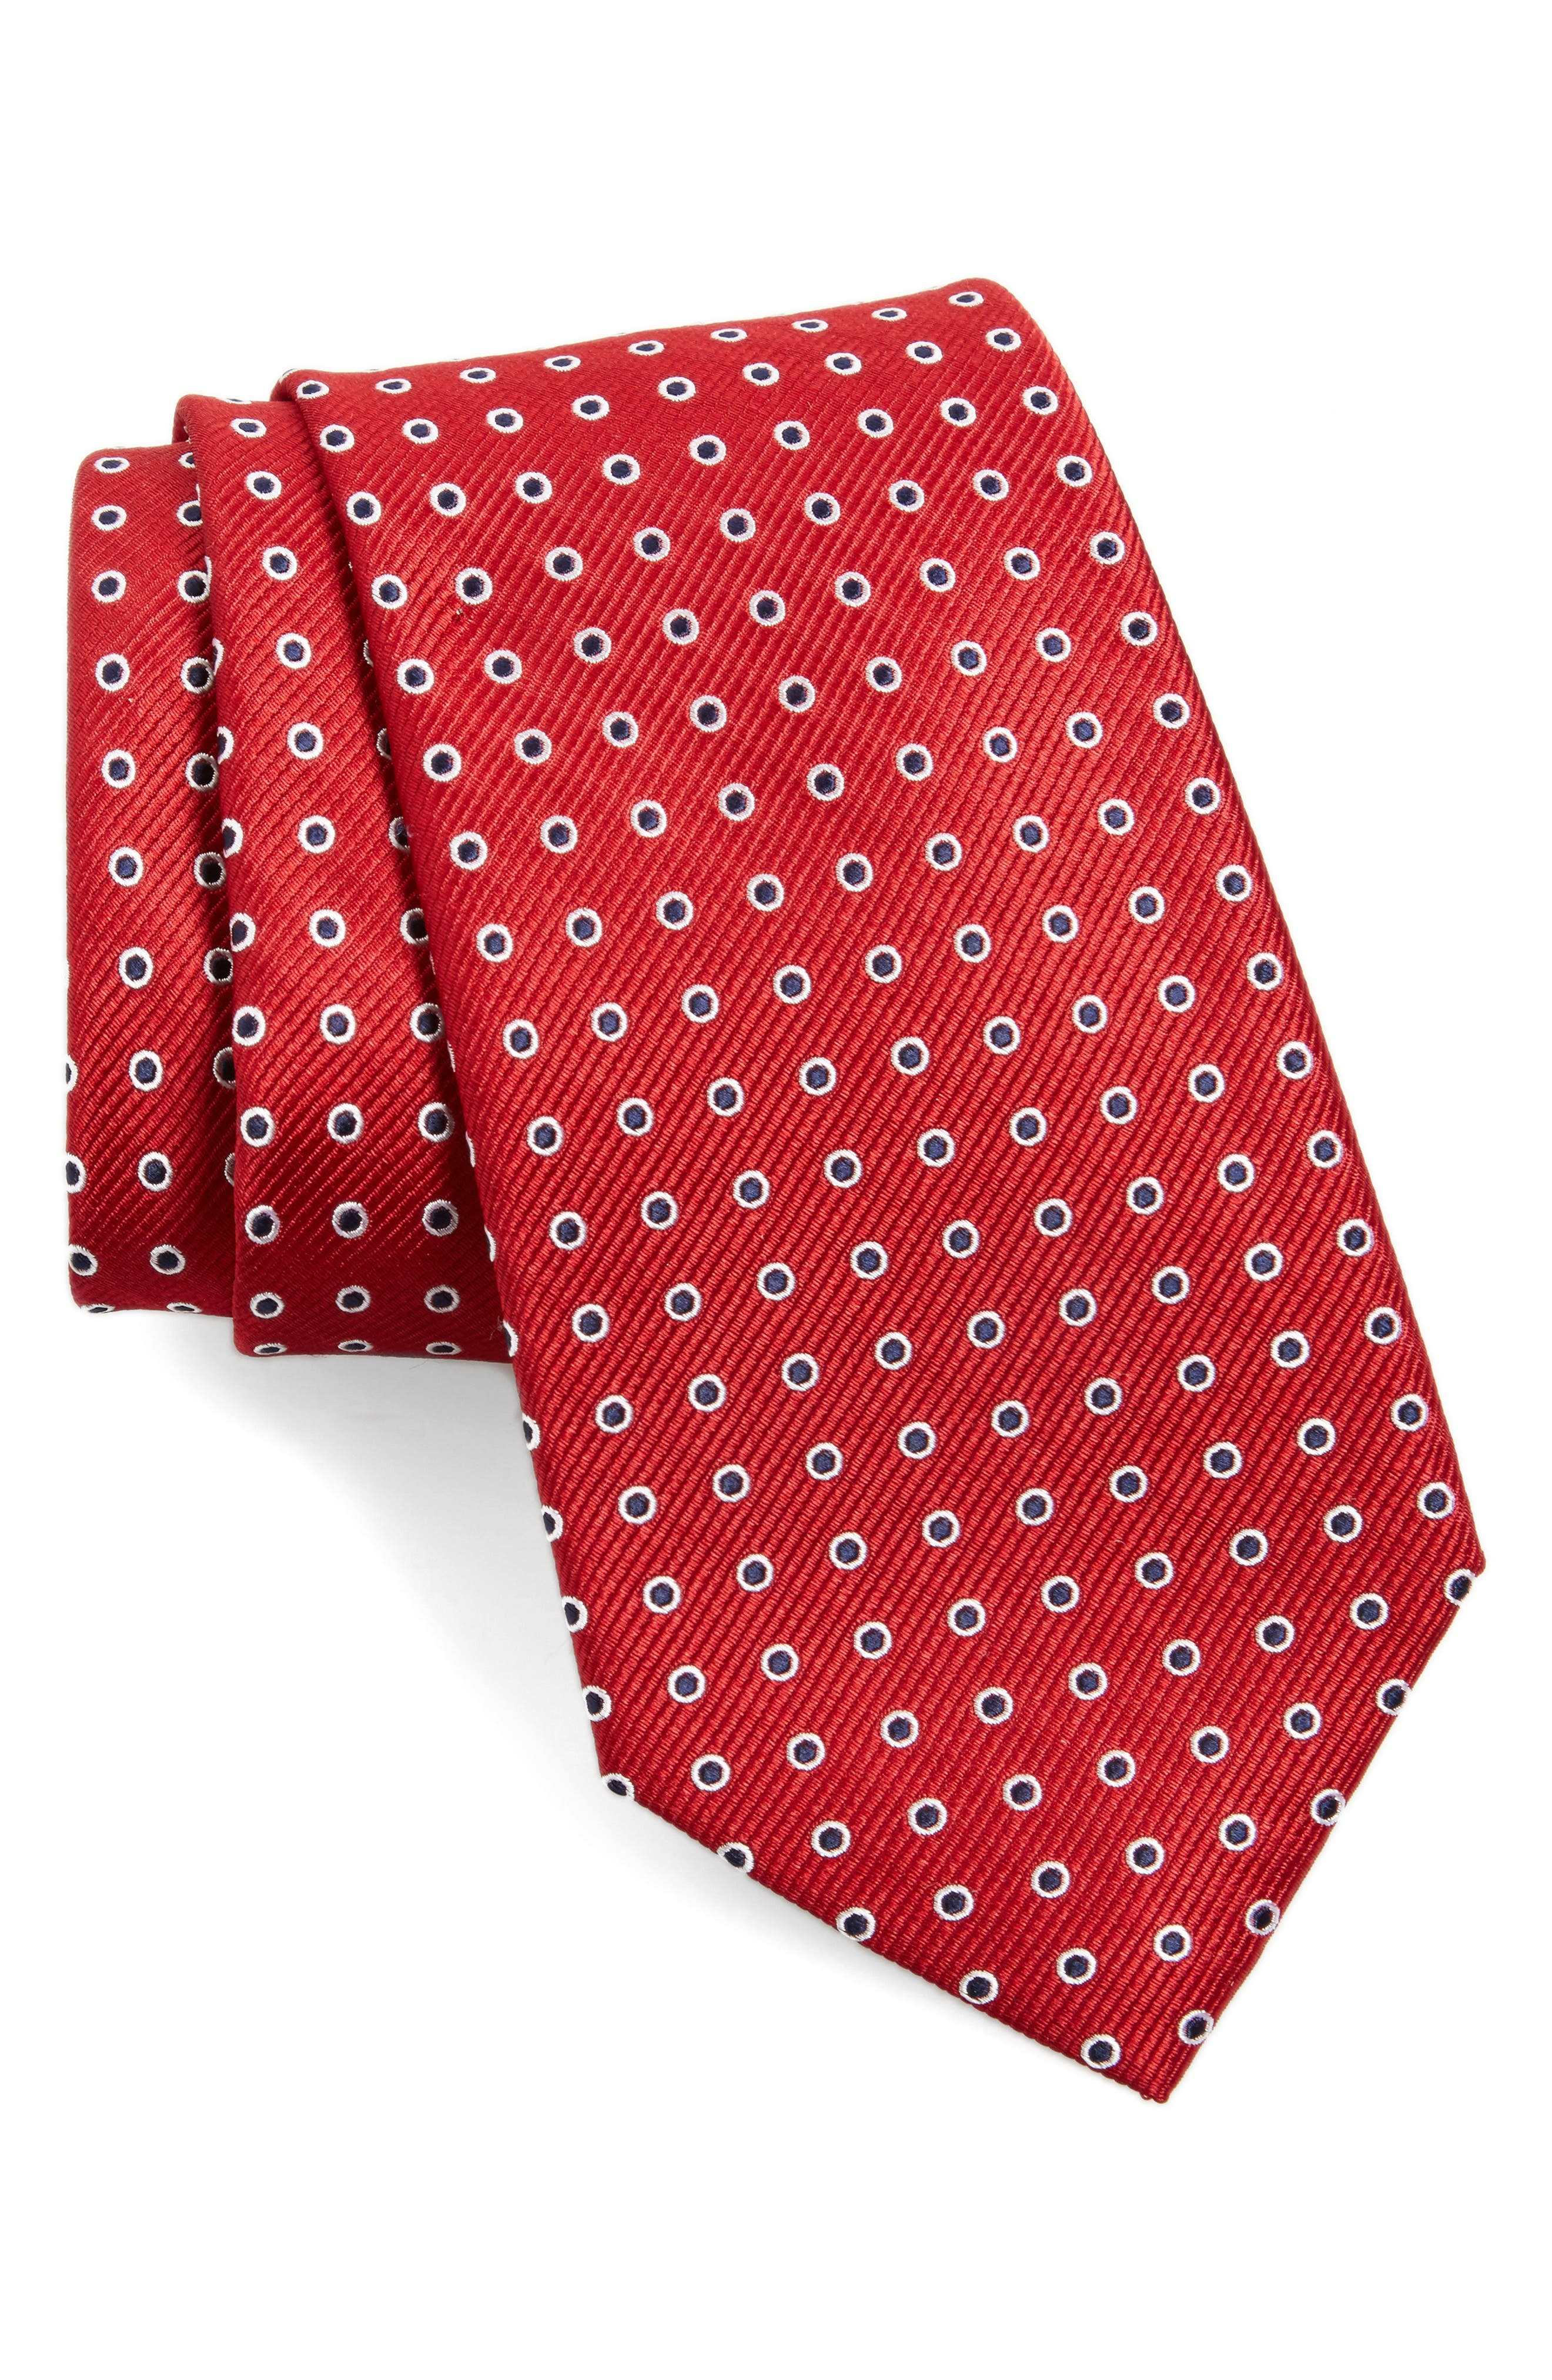 NORDSTROM MENS SHOP Halo Dot Silk Tie